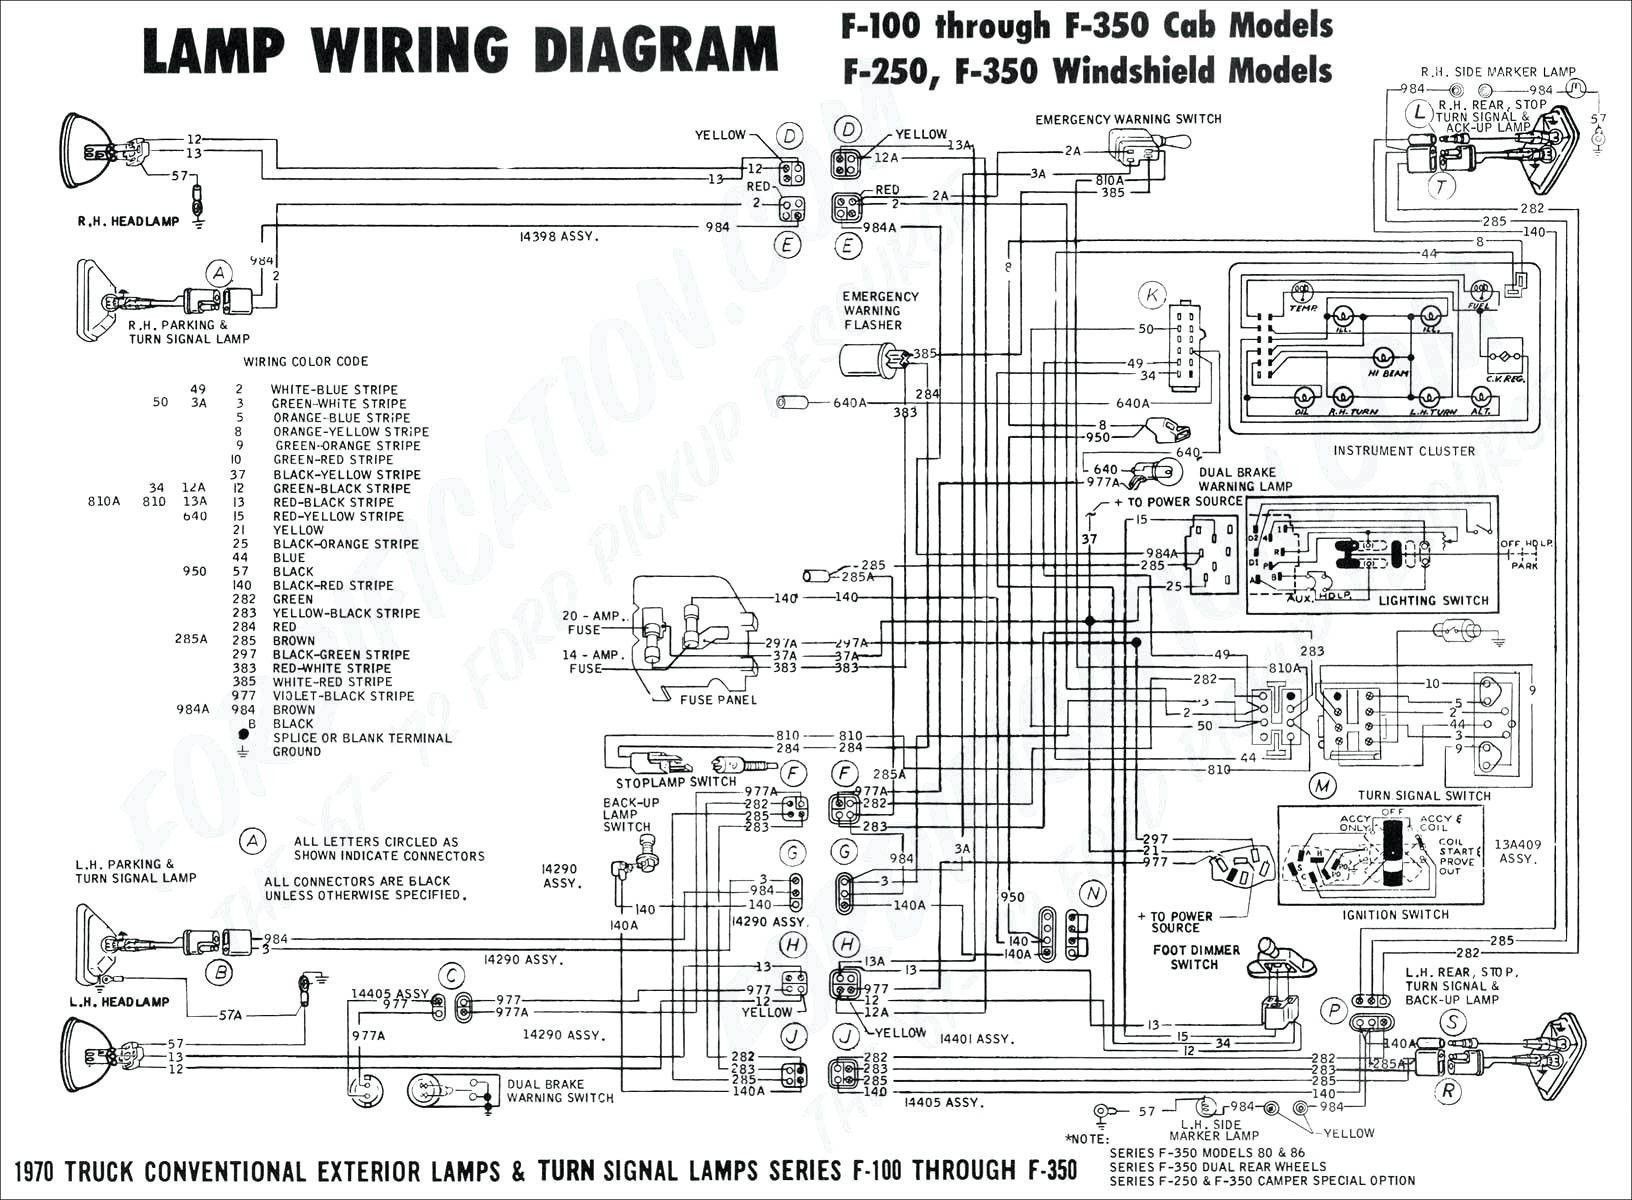 [SCHEMATICS_48IU]  Inspirational toyota Wiring Diagram Abbreviations #diagrams #digramssample  #diagramimages #… | Electrical diagram, Trailer wiring diagram, Electrical  wiring diagram | Abbreviations For Toyota Wiring Diagram |  | Pinterest